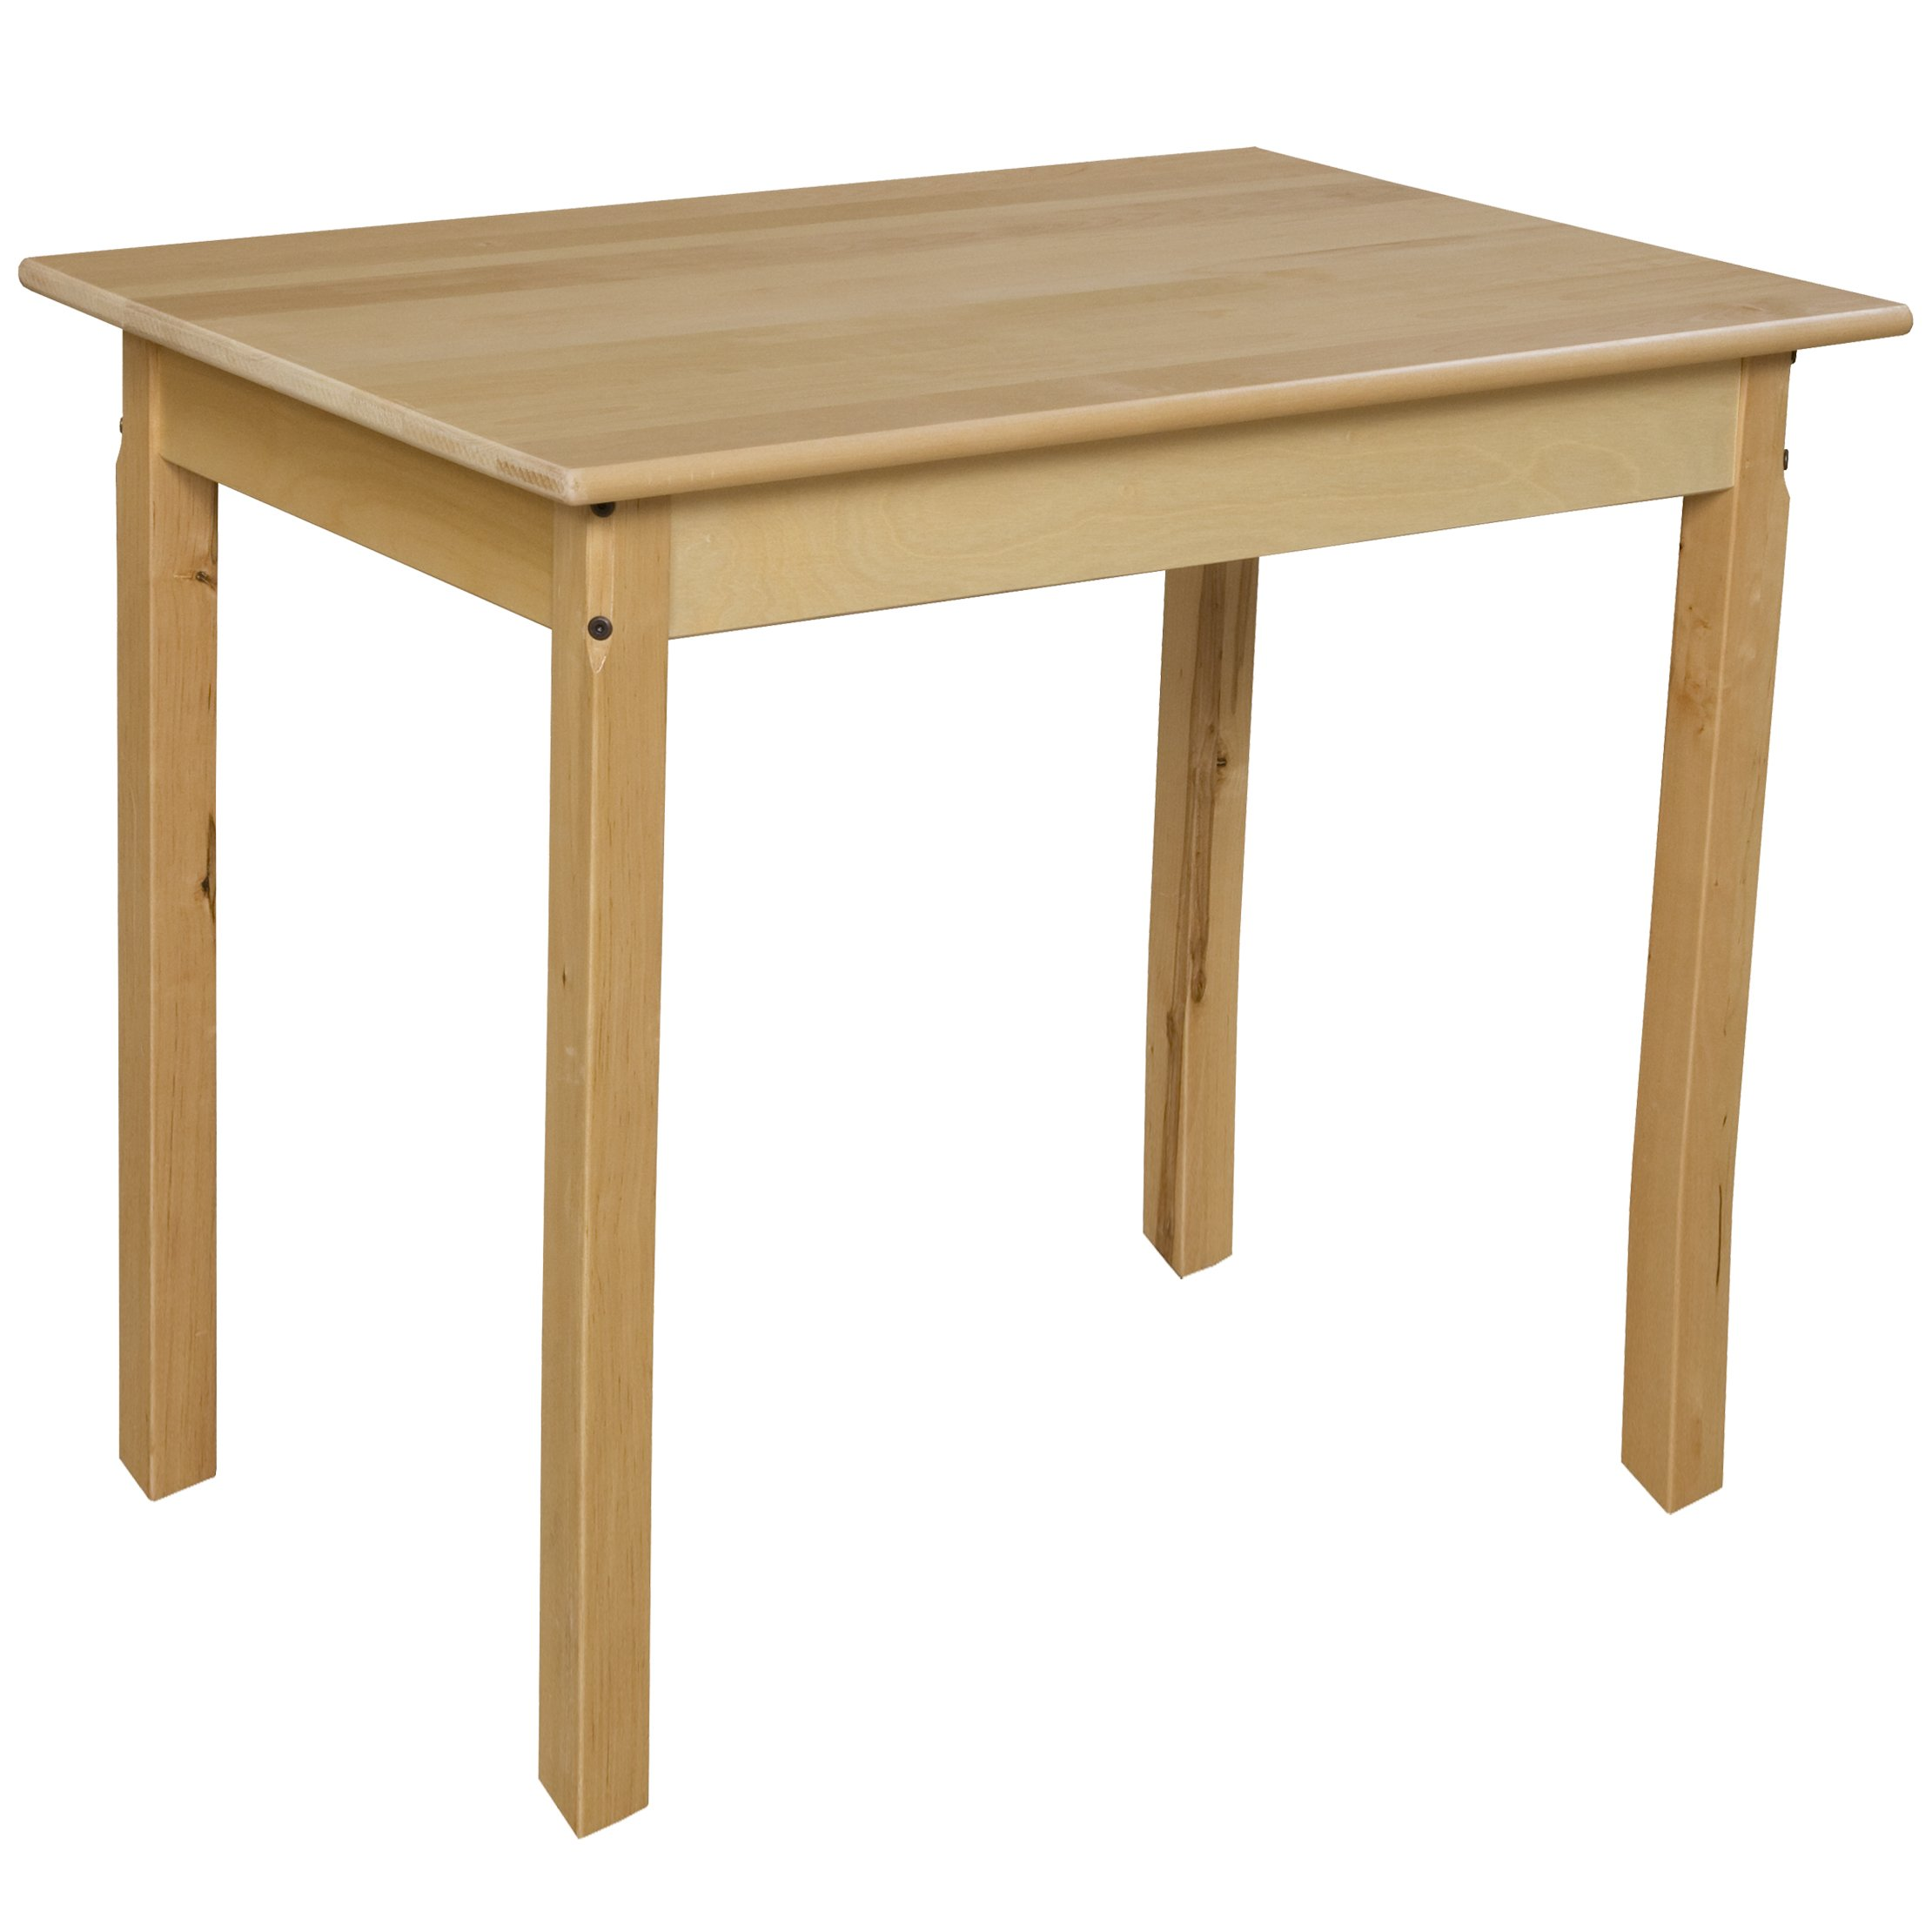 Wood Designs WD82329 Rectangle Hardwood Table with 29'' Legs, 24'' x 36'', Natural by Wood Designs